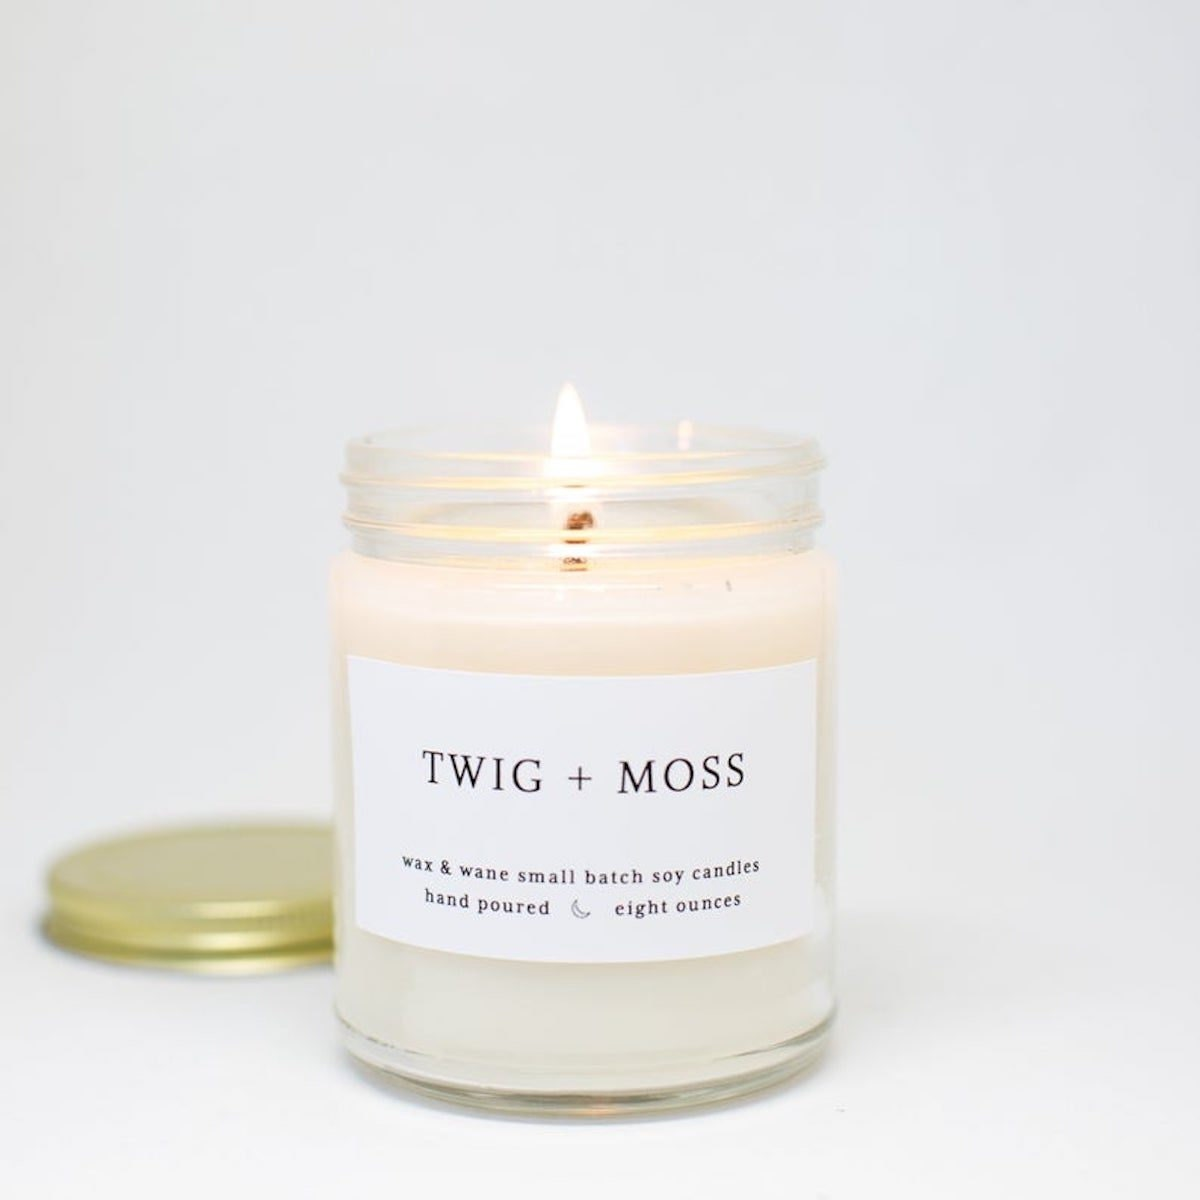 Twig + Moss candle from Wax and Wane on Etsy